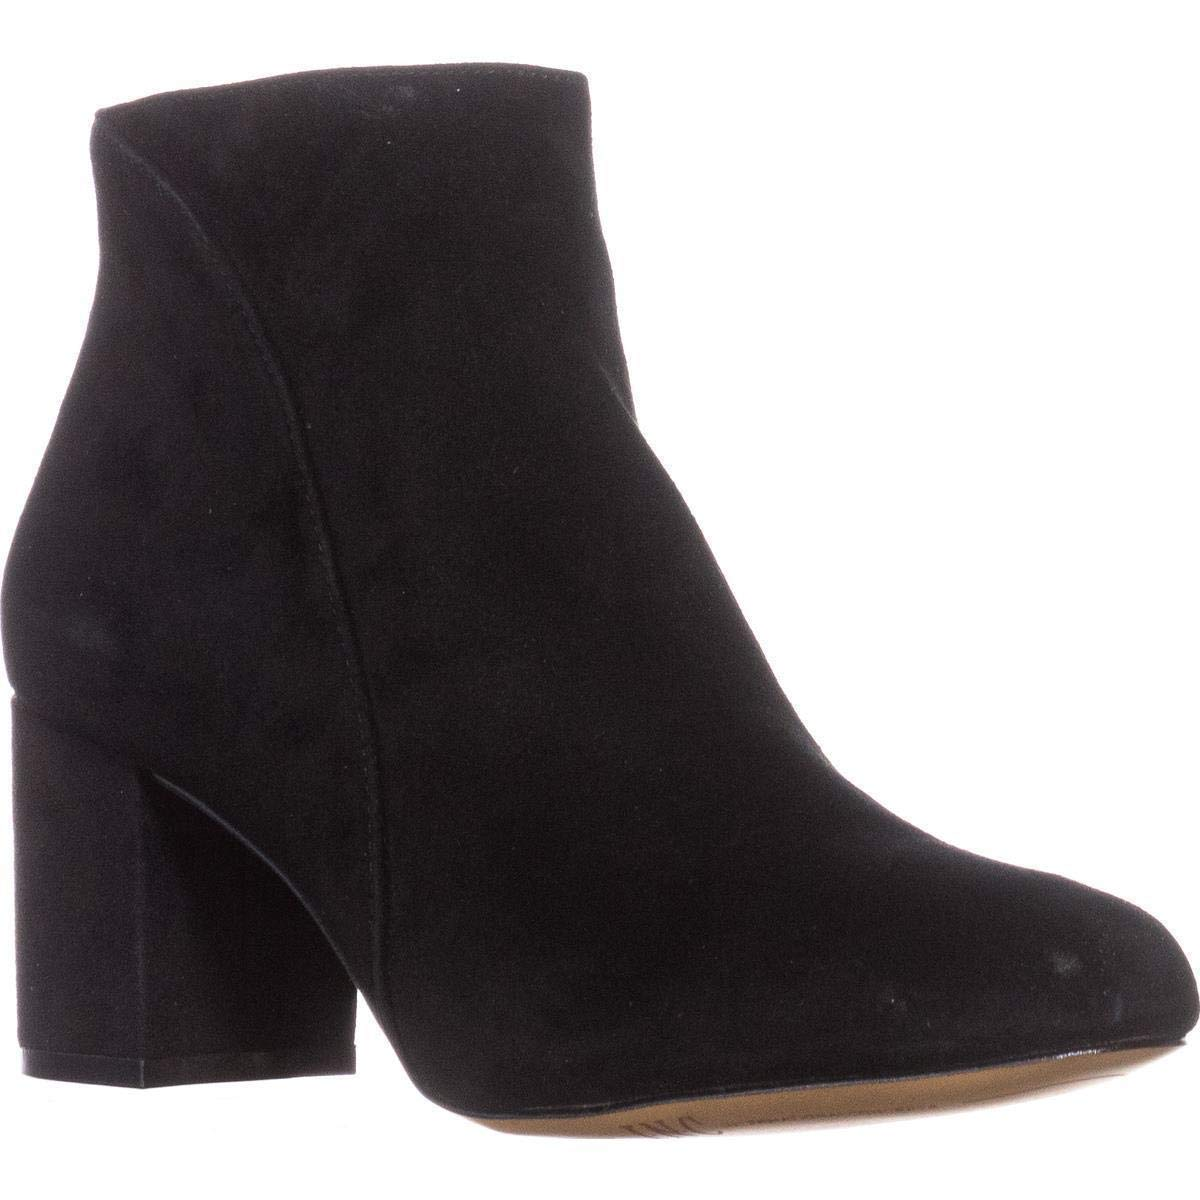 Black Suede INC International Concepts Womens Floriann Leather Almond Toe Ankle Fashion B.